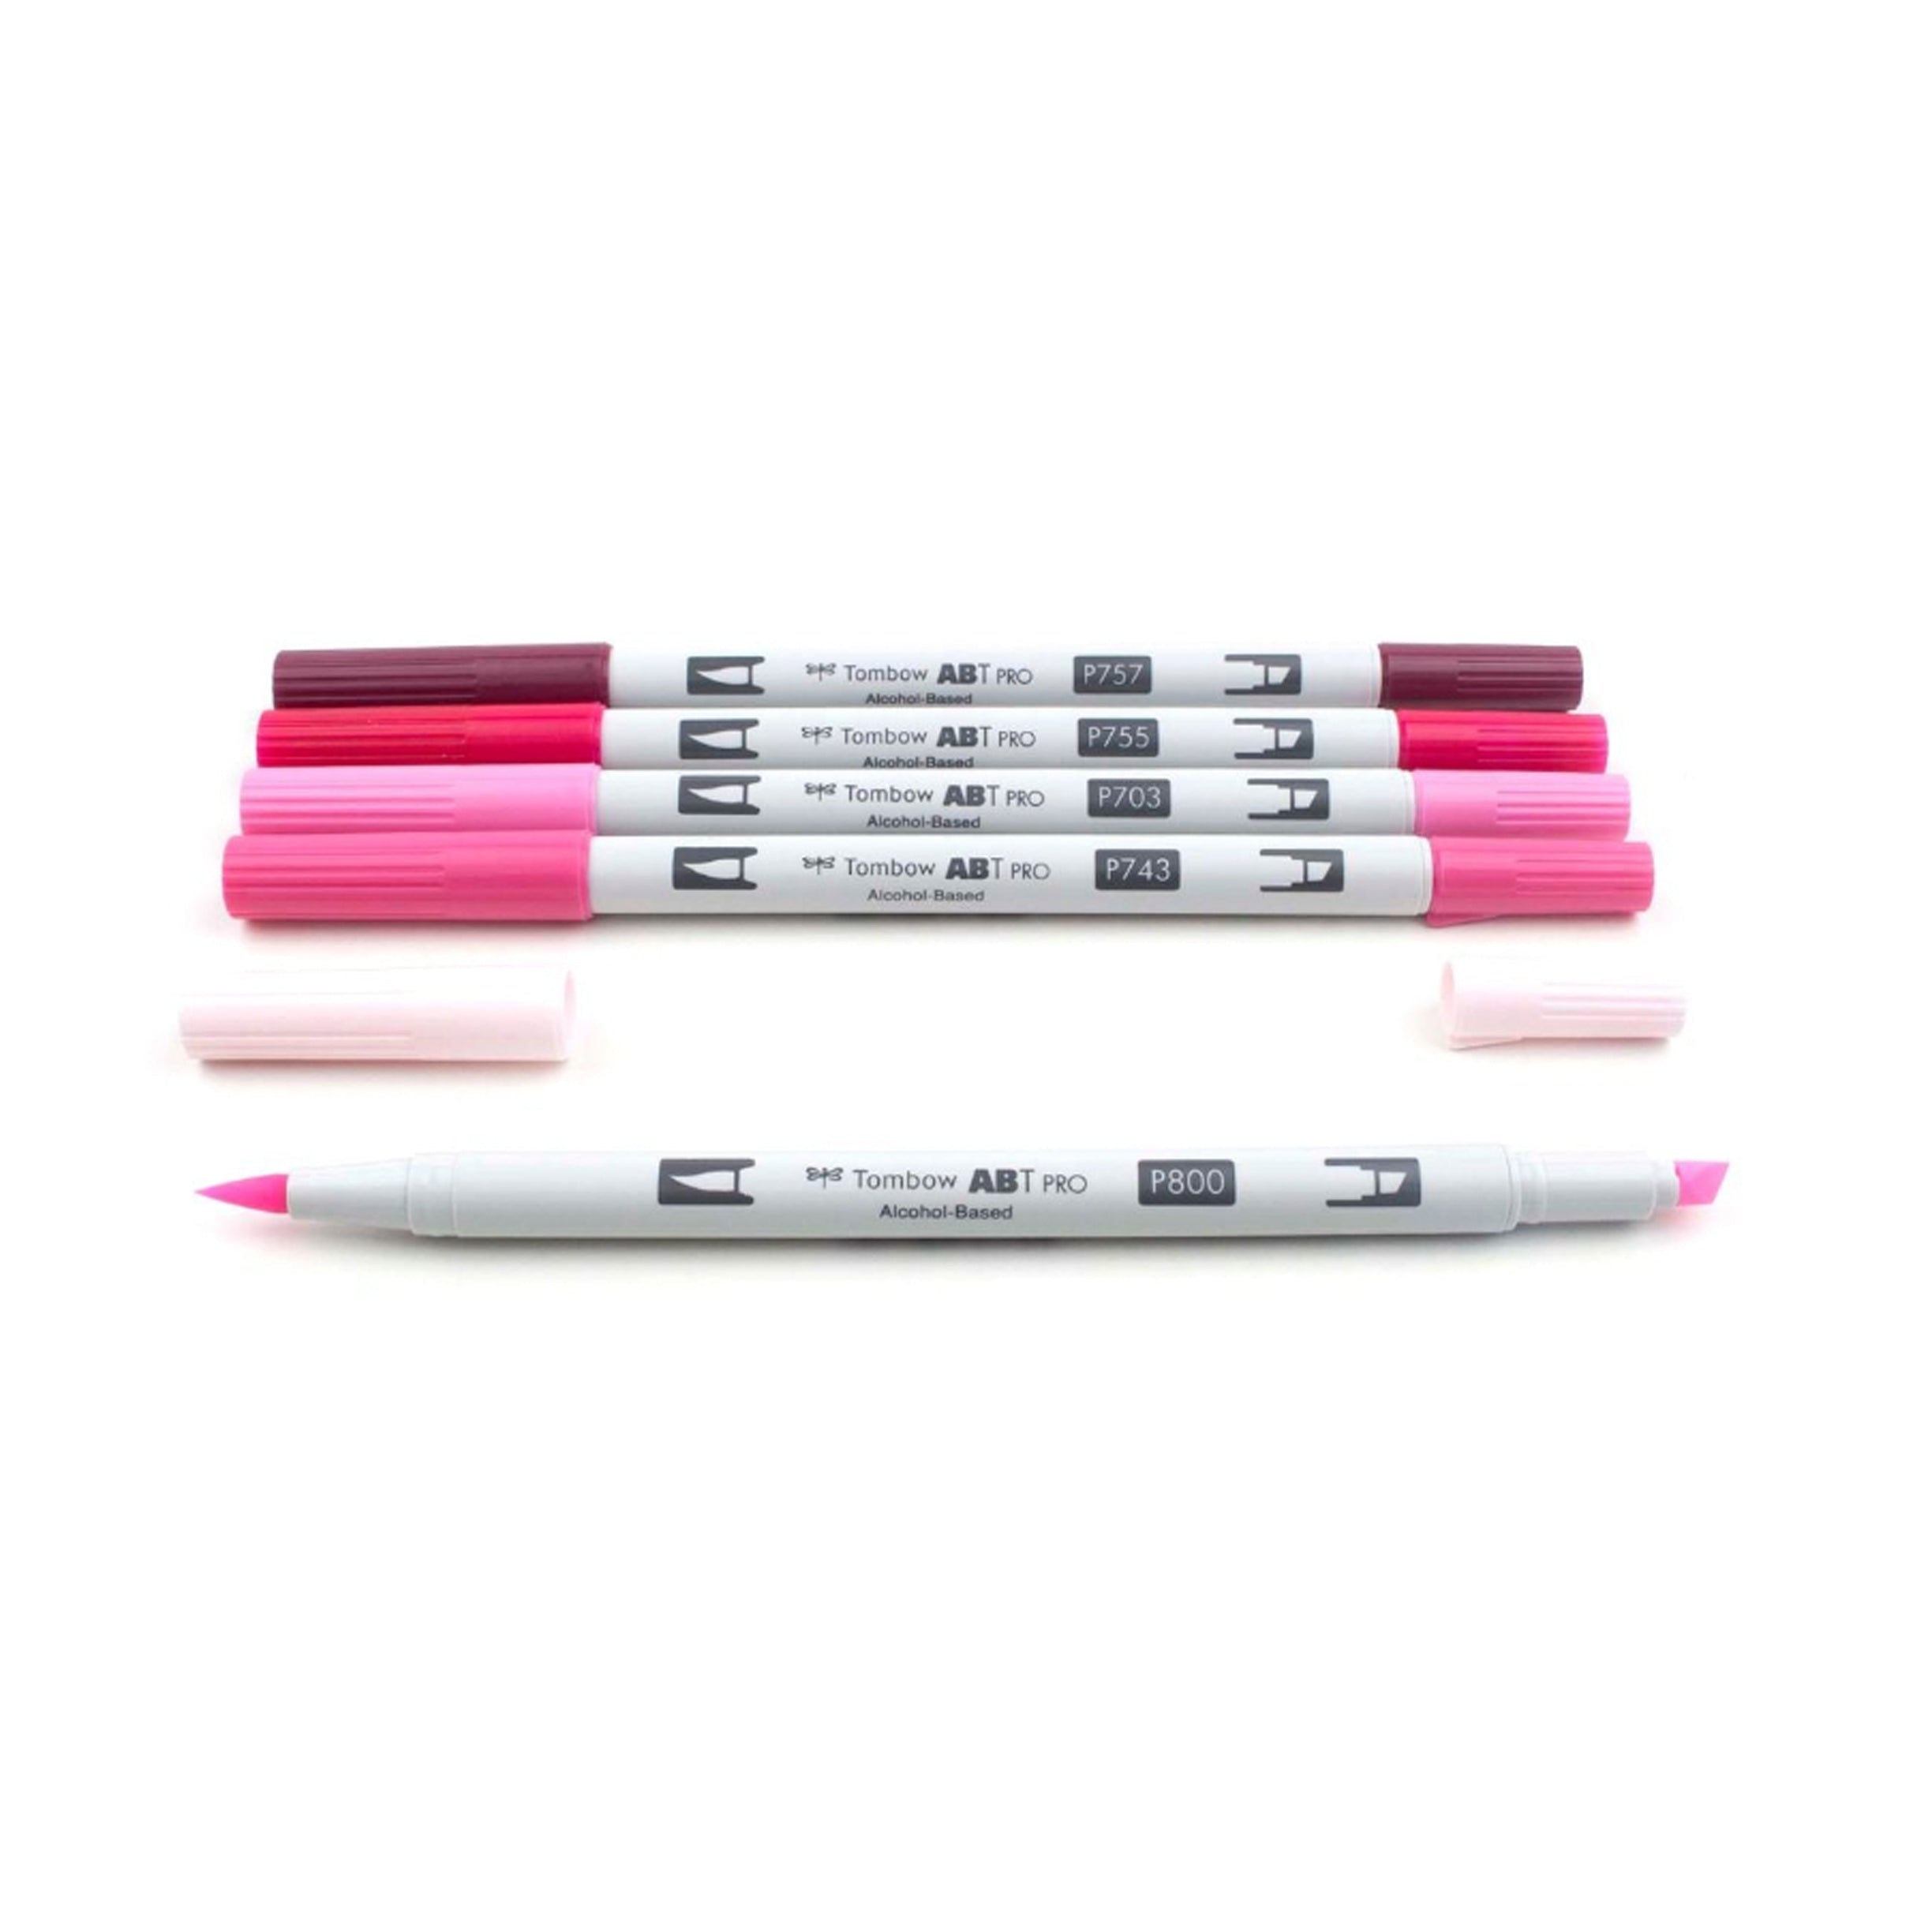 Tombow ABT PRO Alochol-Based Markers, Pink Tones Set of 5